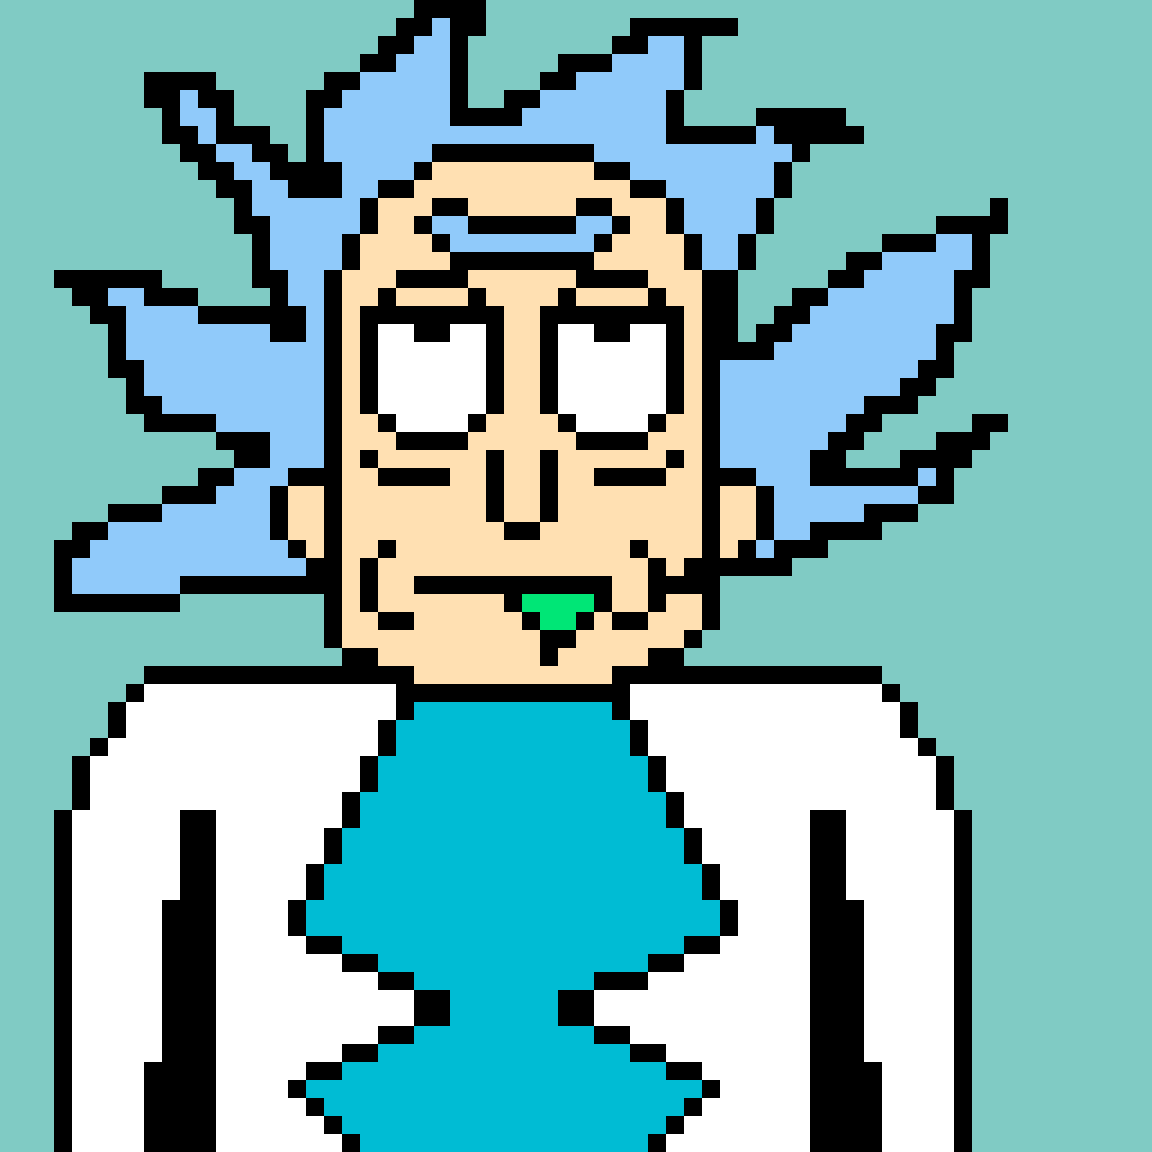 Rick from rick and morty  by Xdshadowwolfy